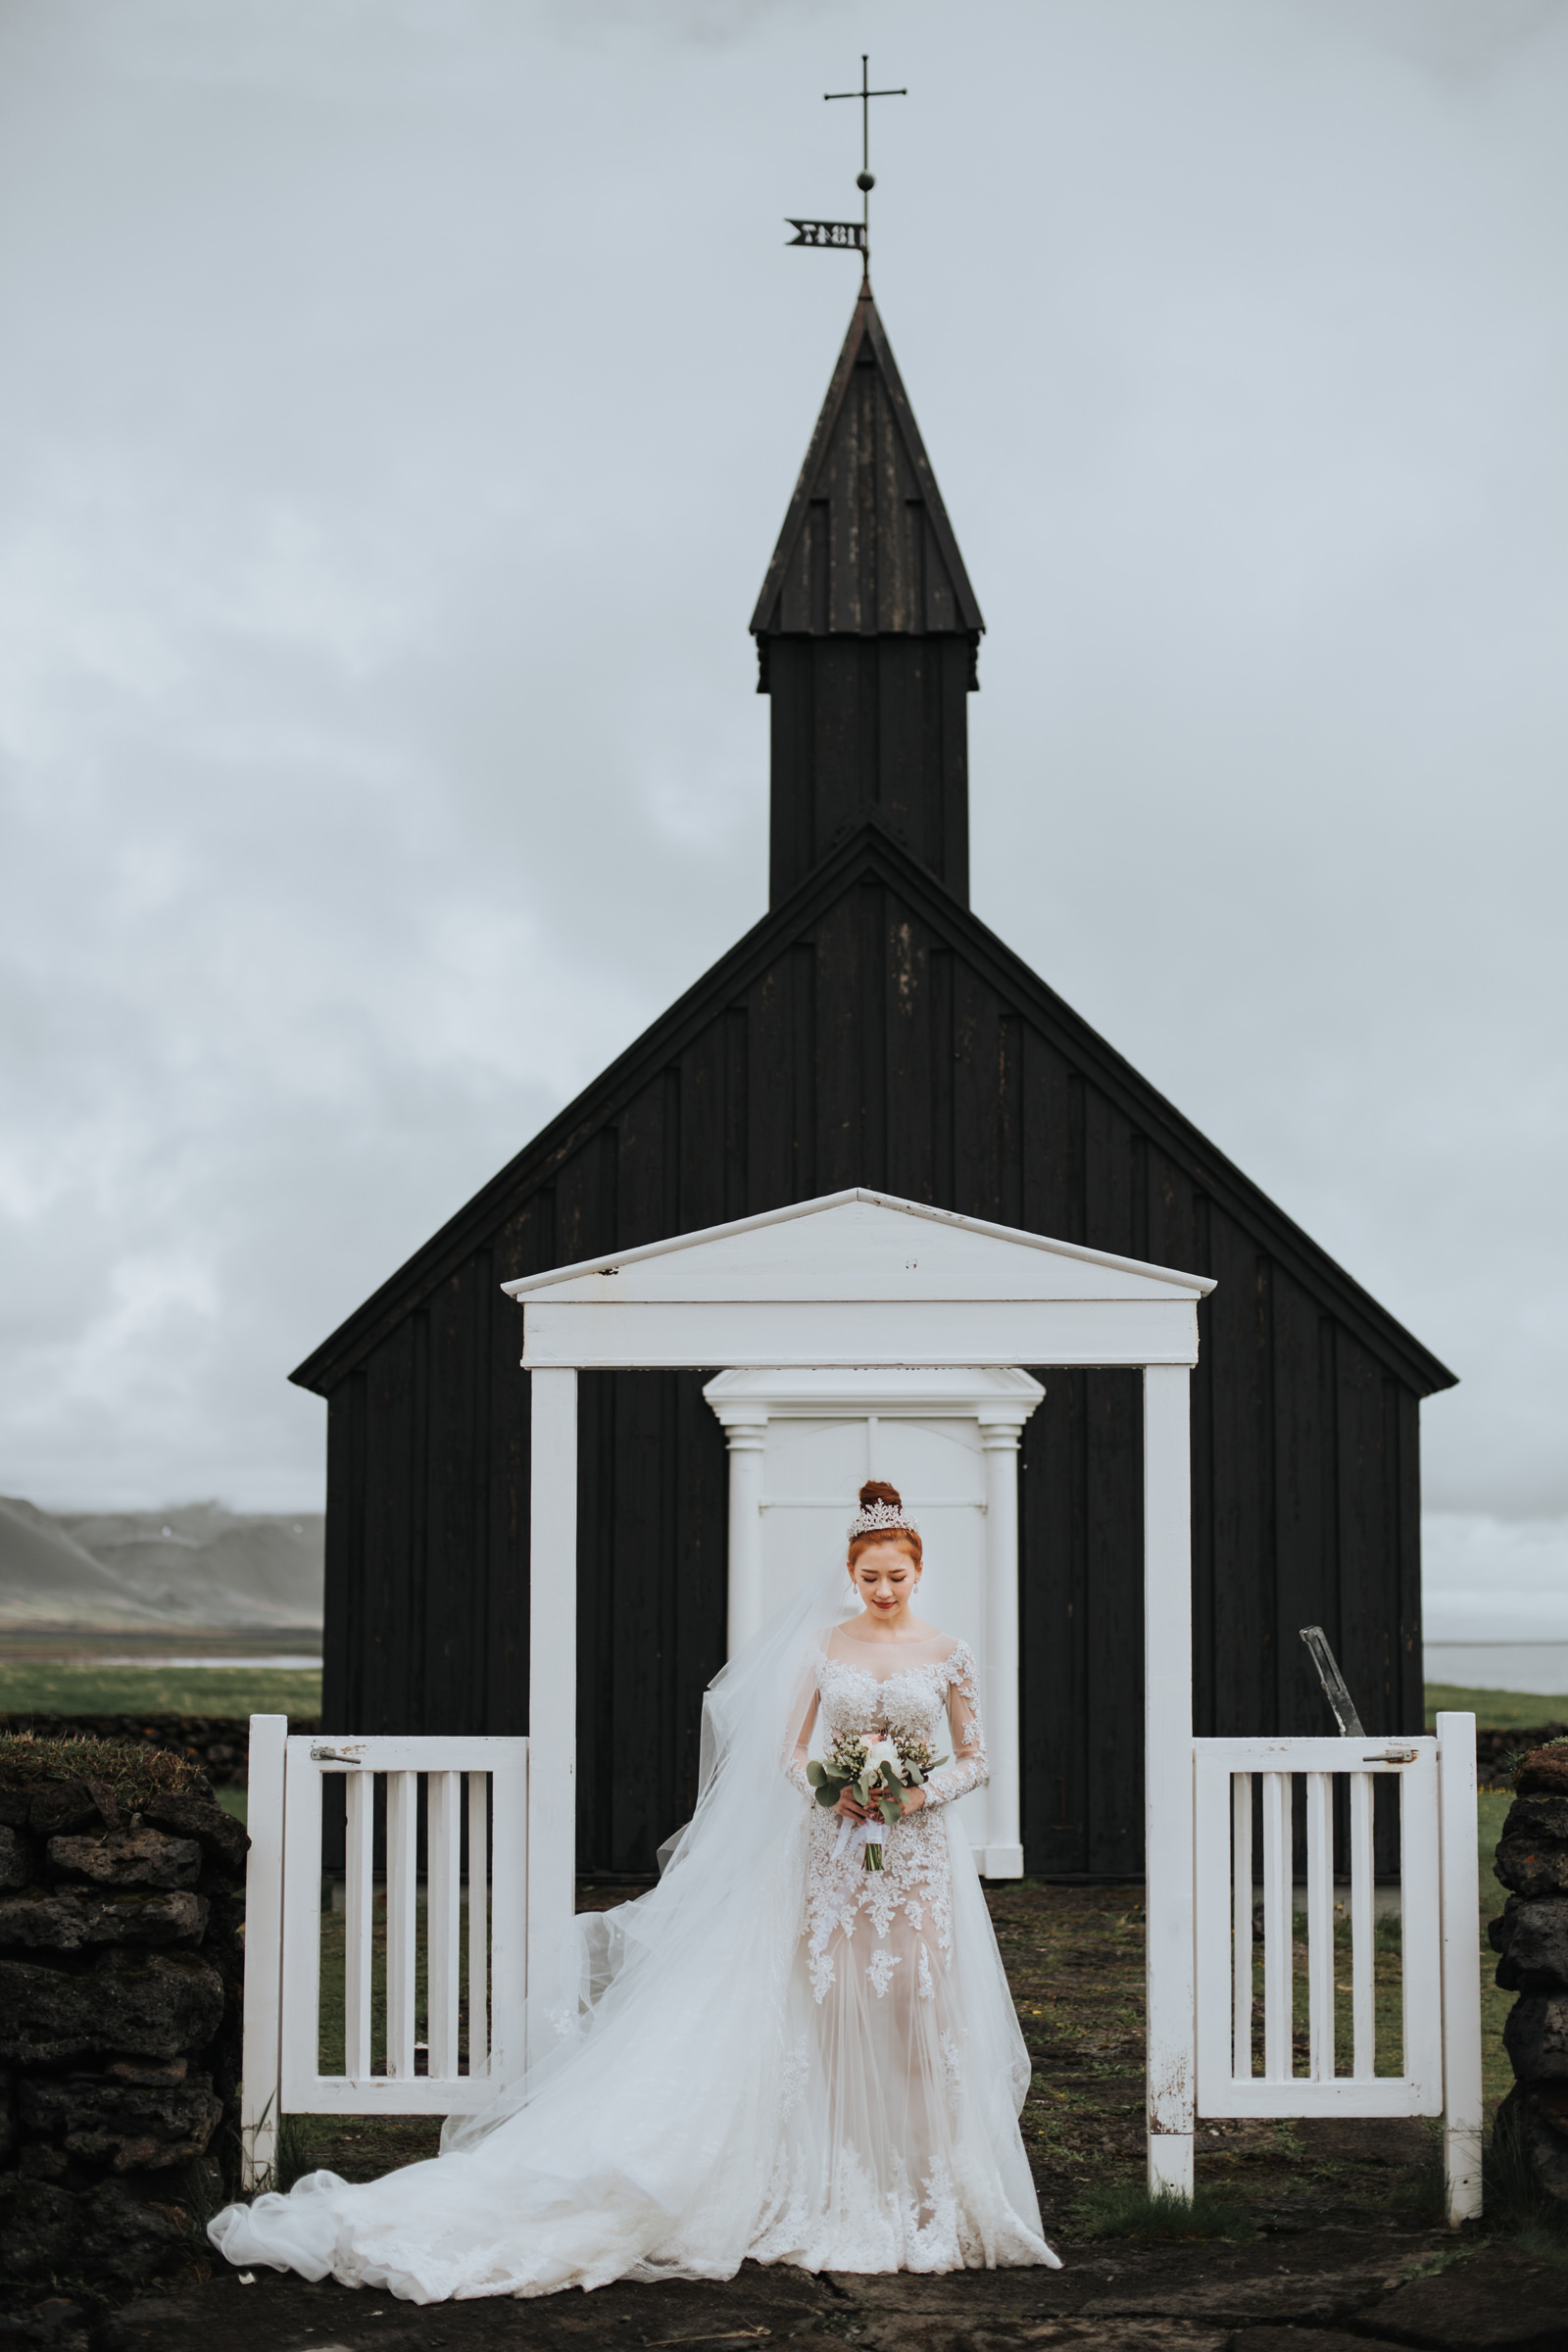 Bride in lace gown in front of small black and white church - photo by Mun Keat Studio